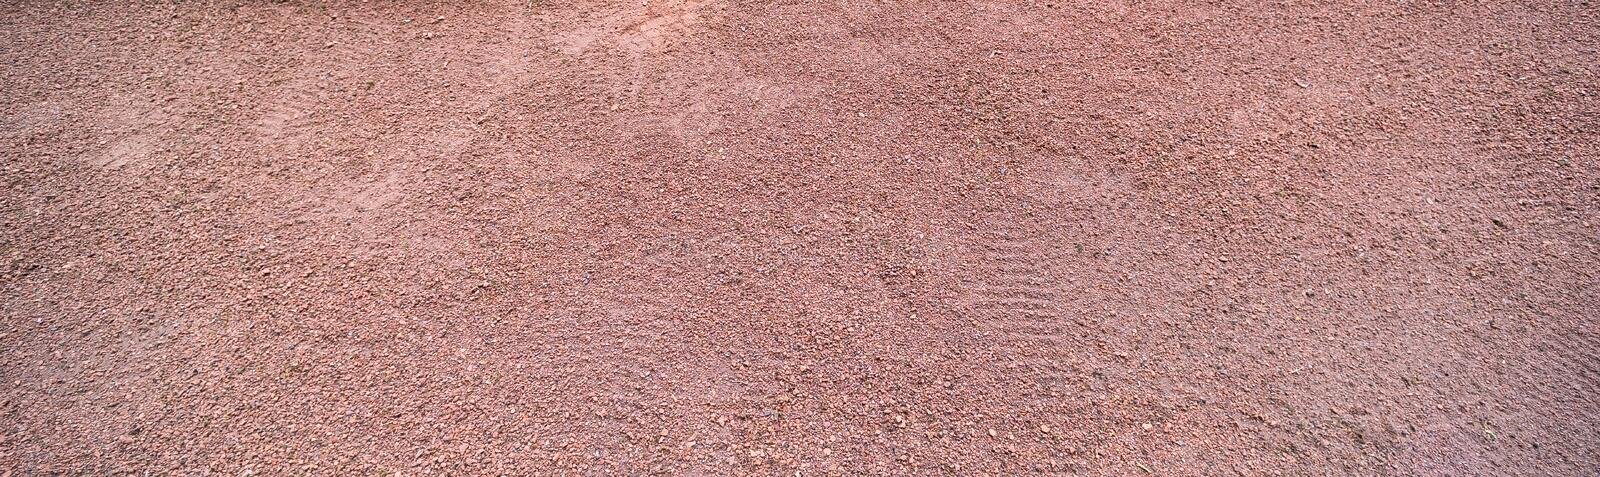 Long horizontal red sand surface with shoe prints. On top, nature, dry, background, texture, desert, textured, abstract, outdoor, brown, rough, natural, land royalty free stock photos